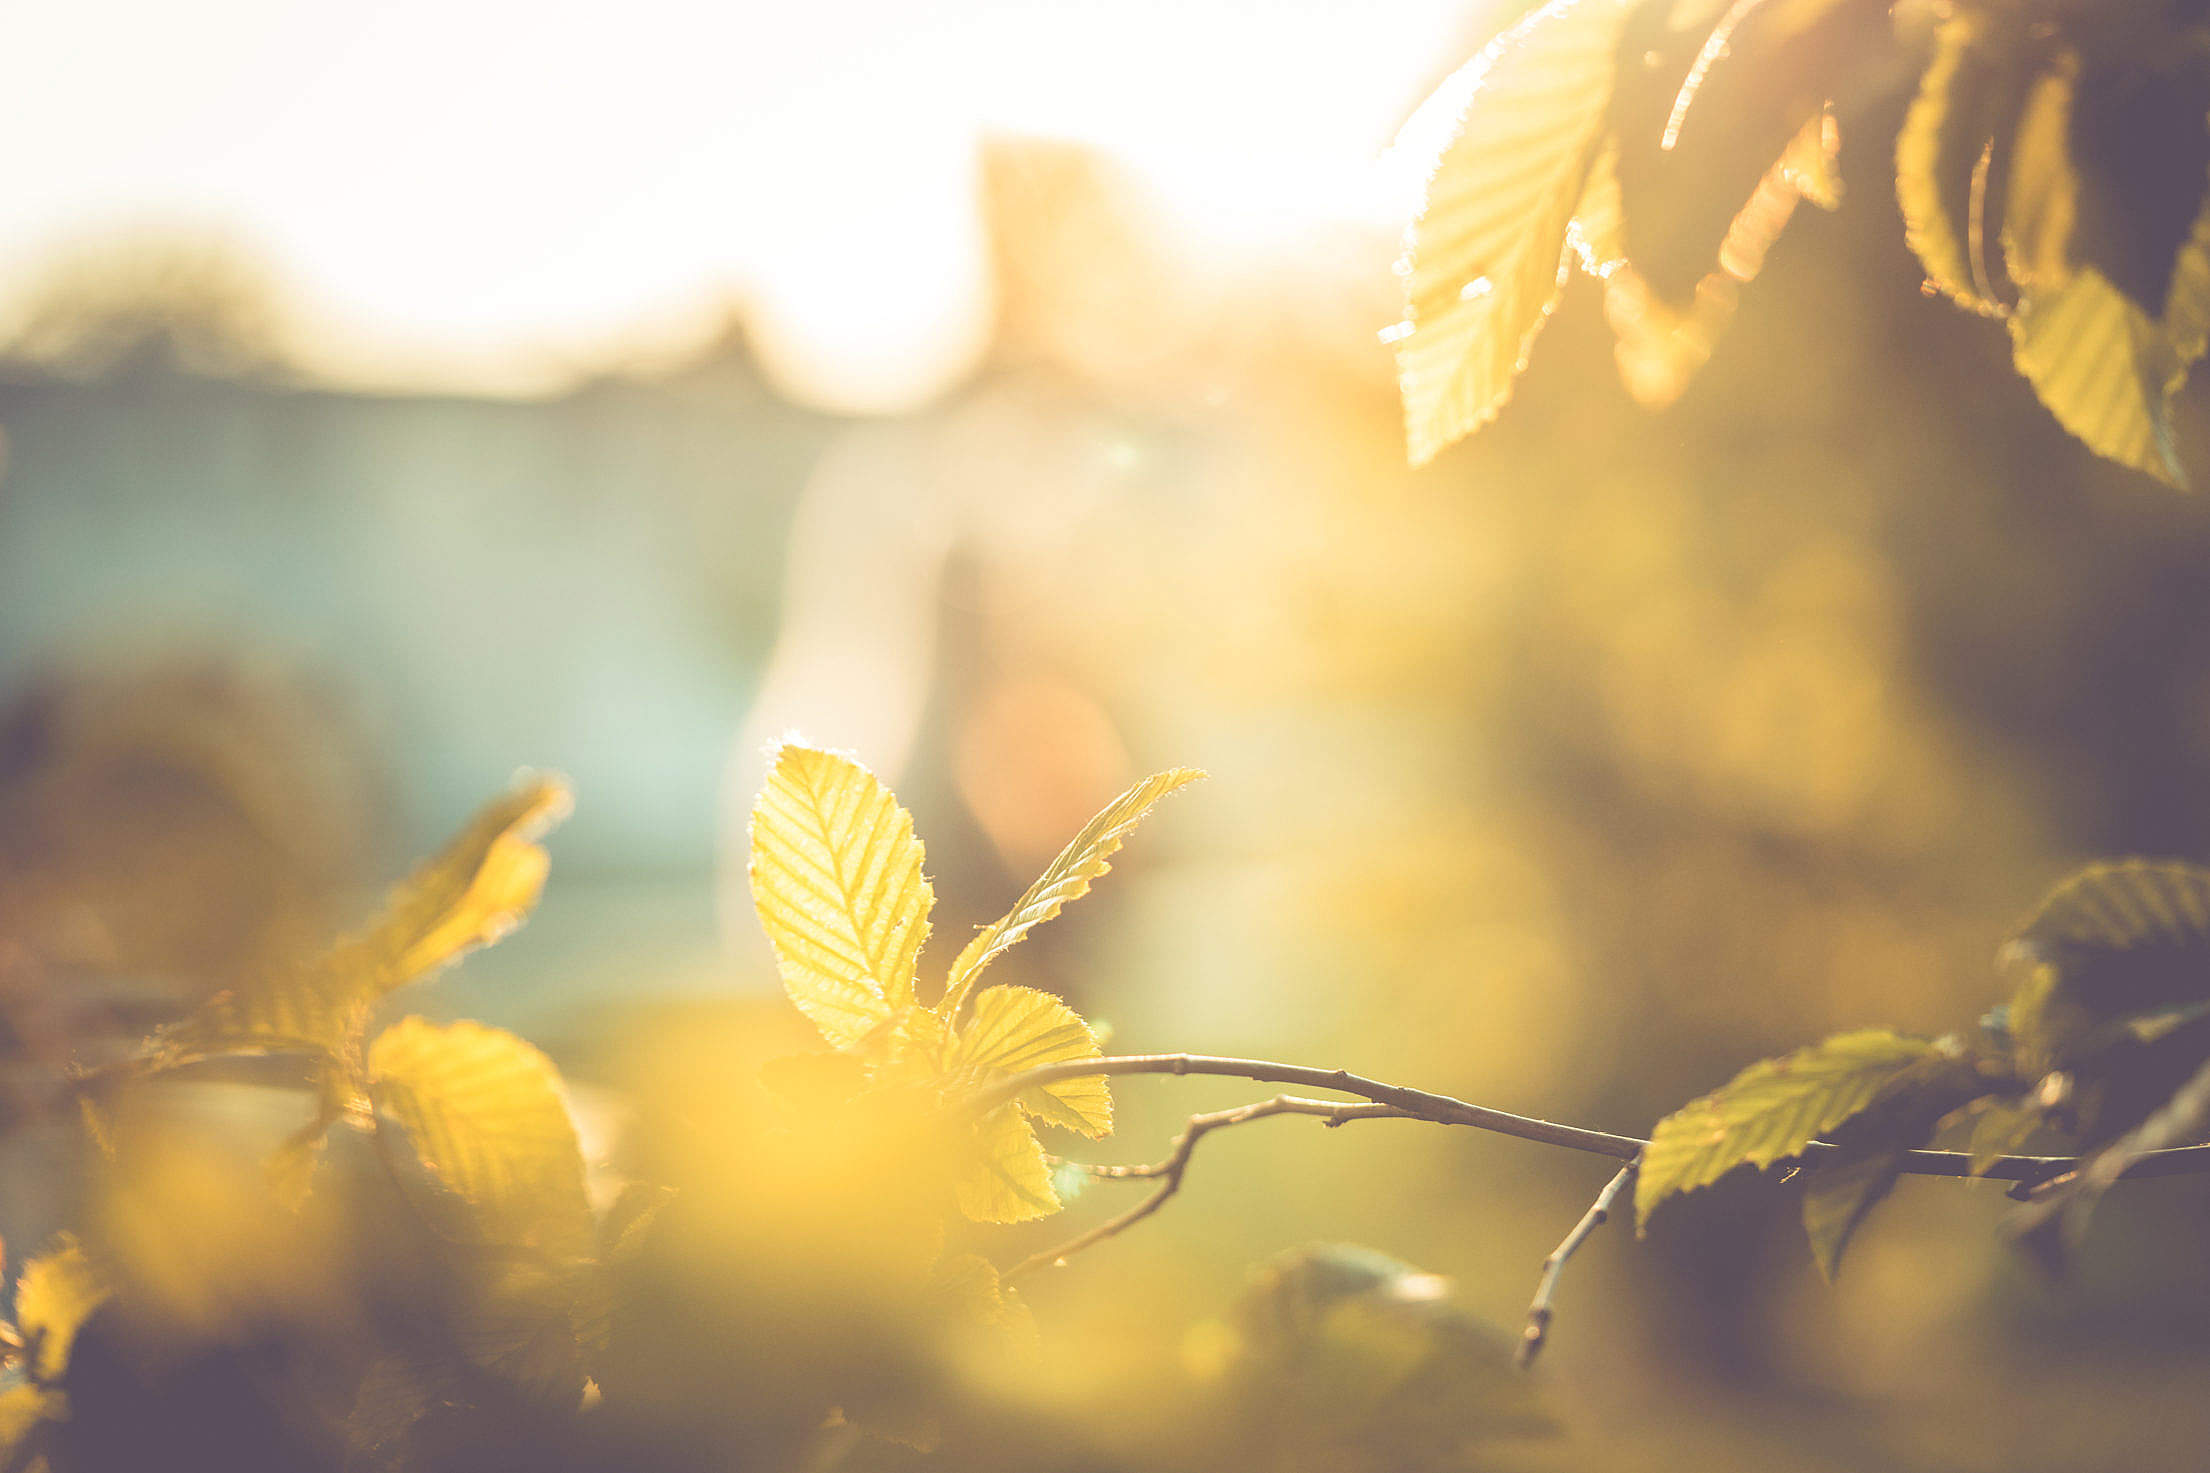 Fall Autumn Leaves Abstract Free Stock Photo